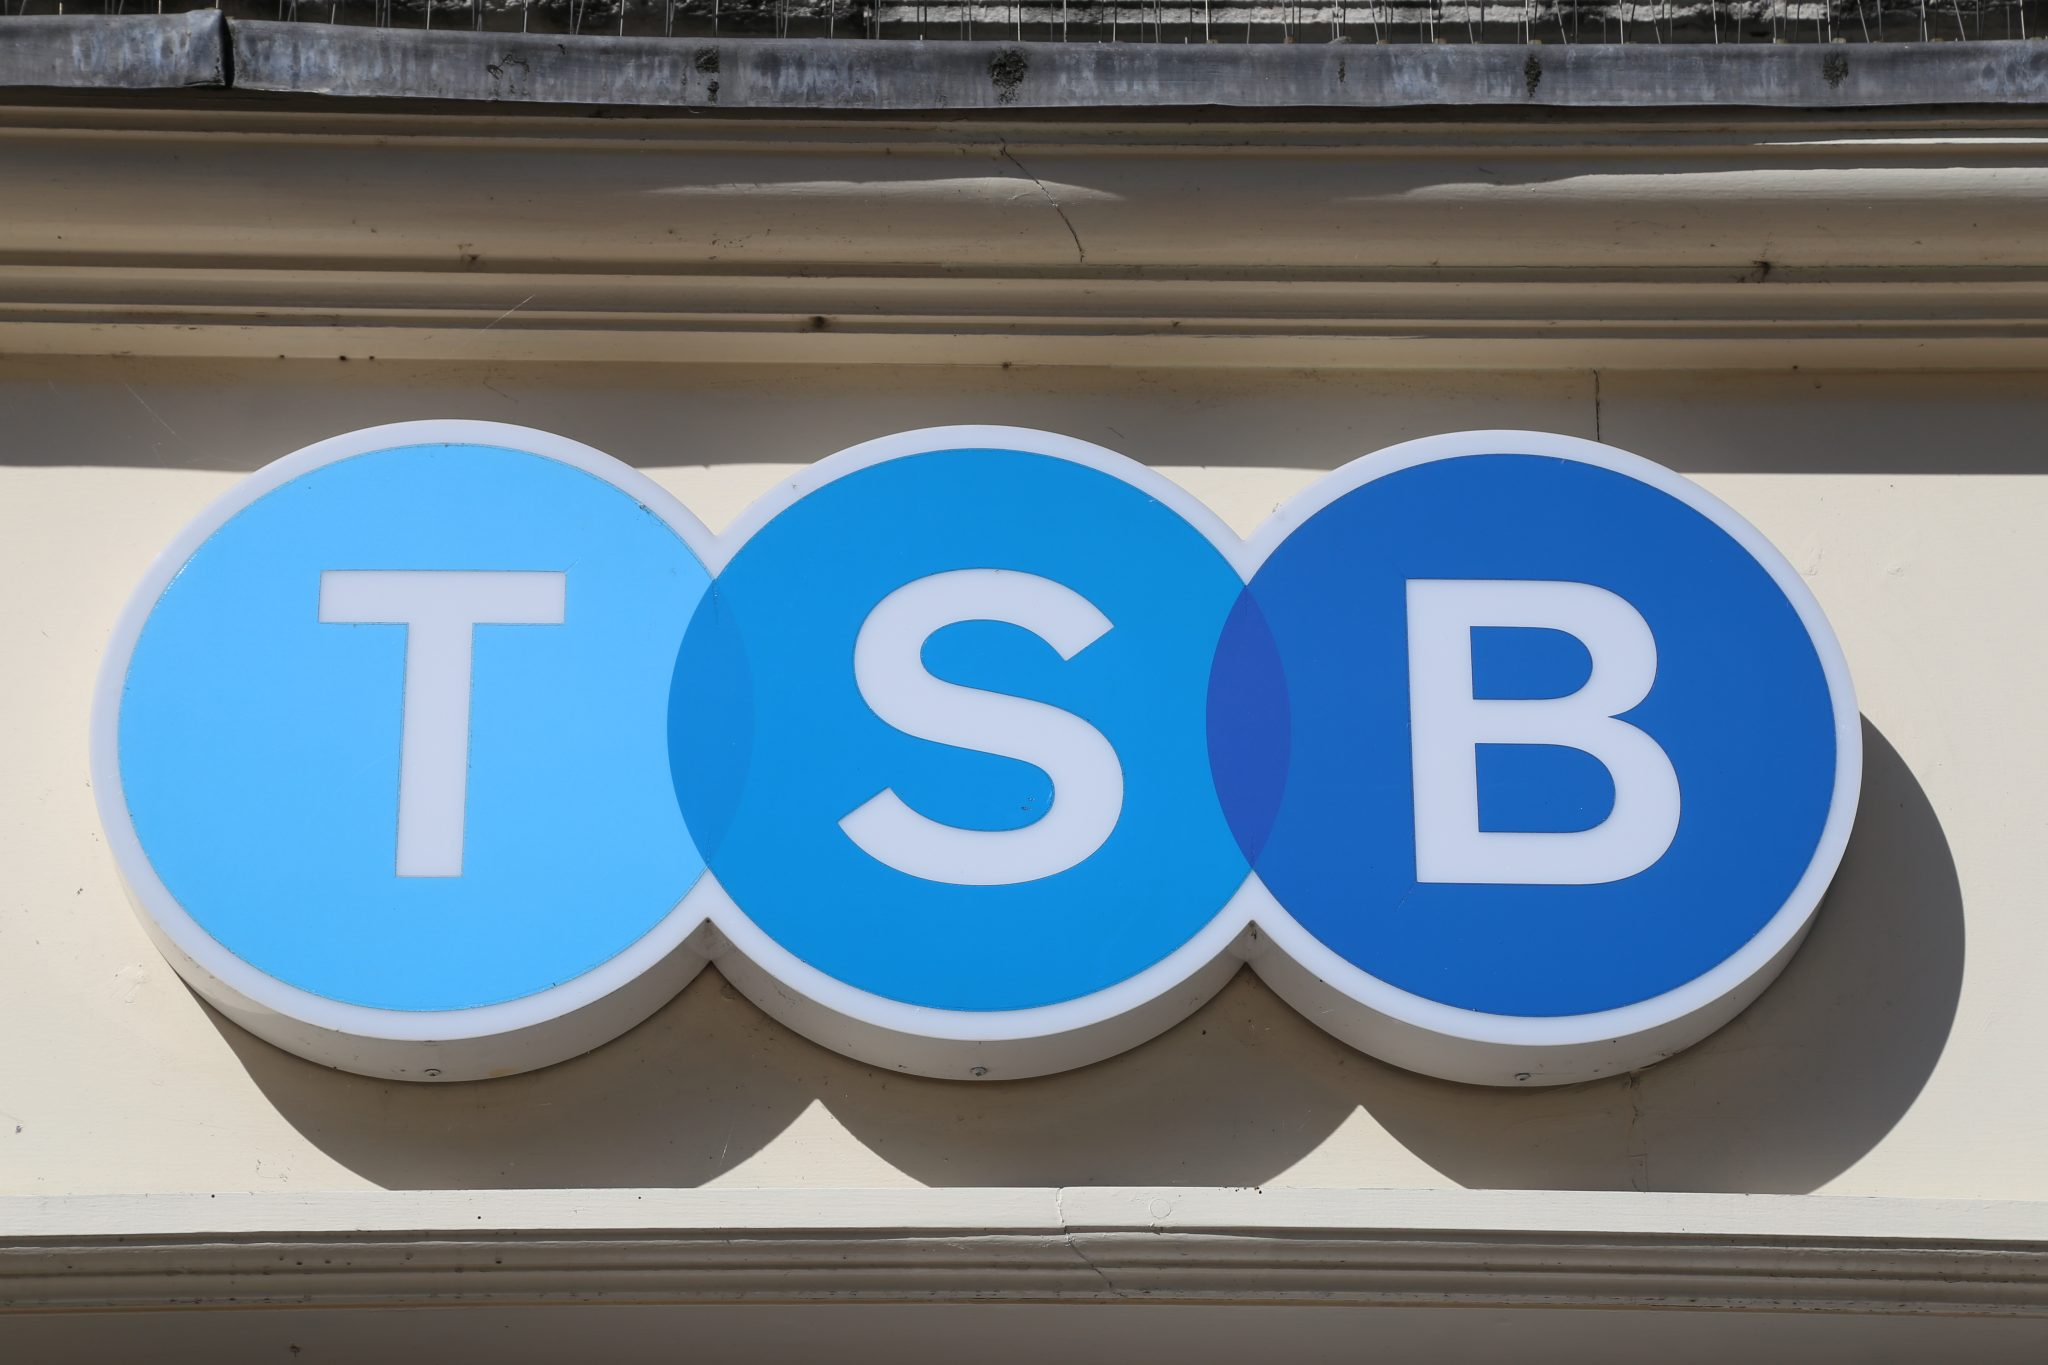 Claim back tsb ppi before the deadline canary claims ppi claims with only a year and a half left before the ppi claims deadline be sure to claim back tsb ppi before its too late solutioingenieria Image collections